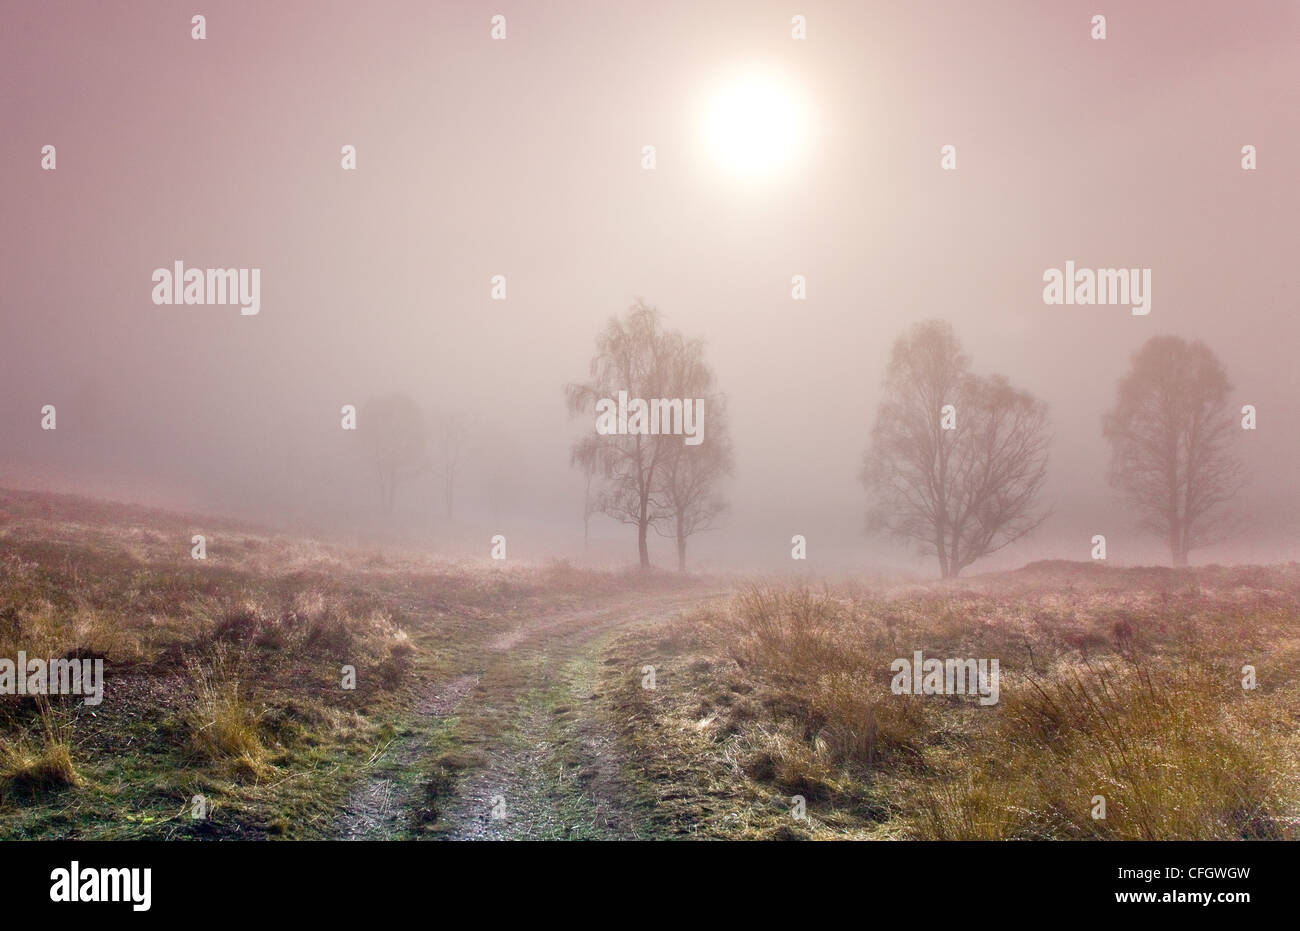 Birch Trees Morning Mist on Cannock Chase AONB (area of outstanding natural beauty) in Staffordshire Midlands England - Stock Image